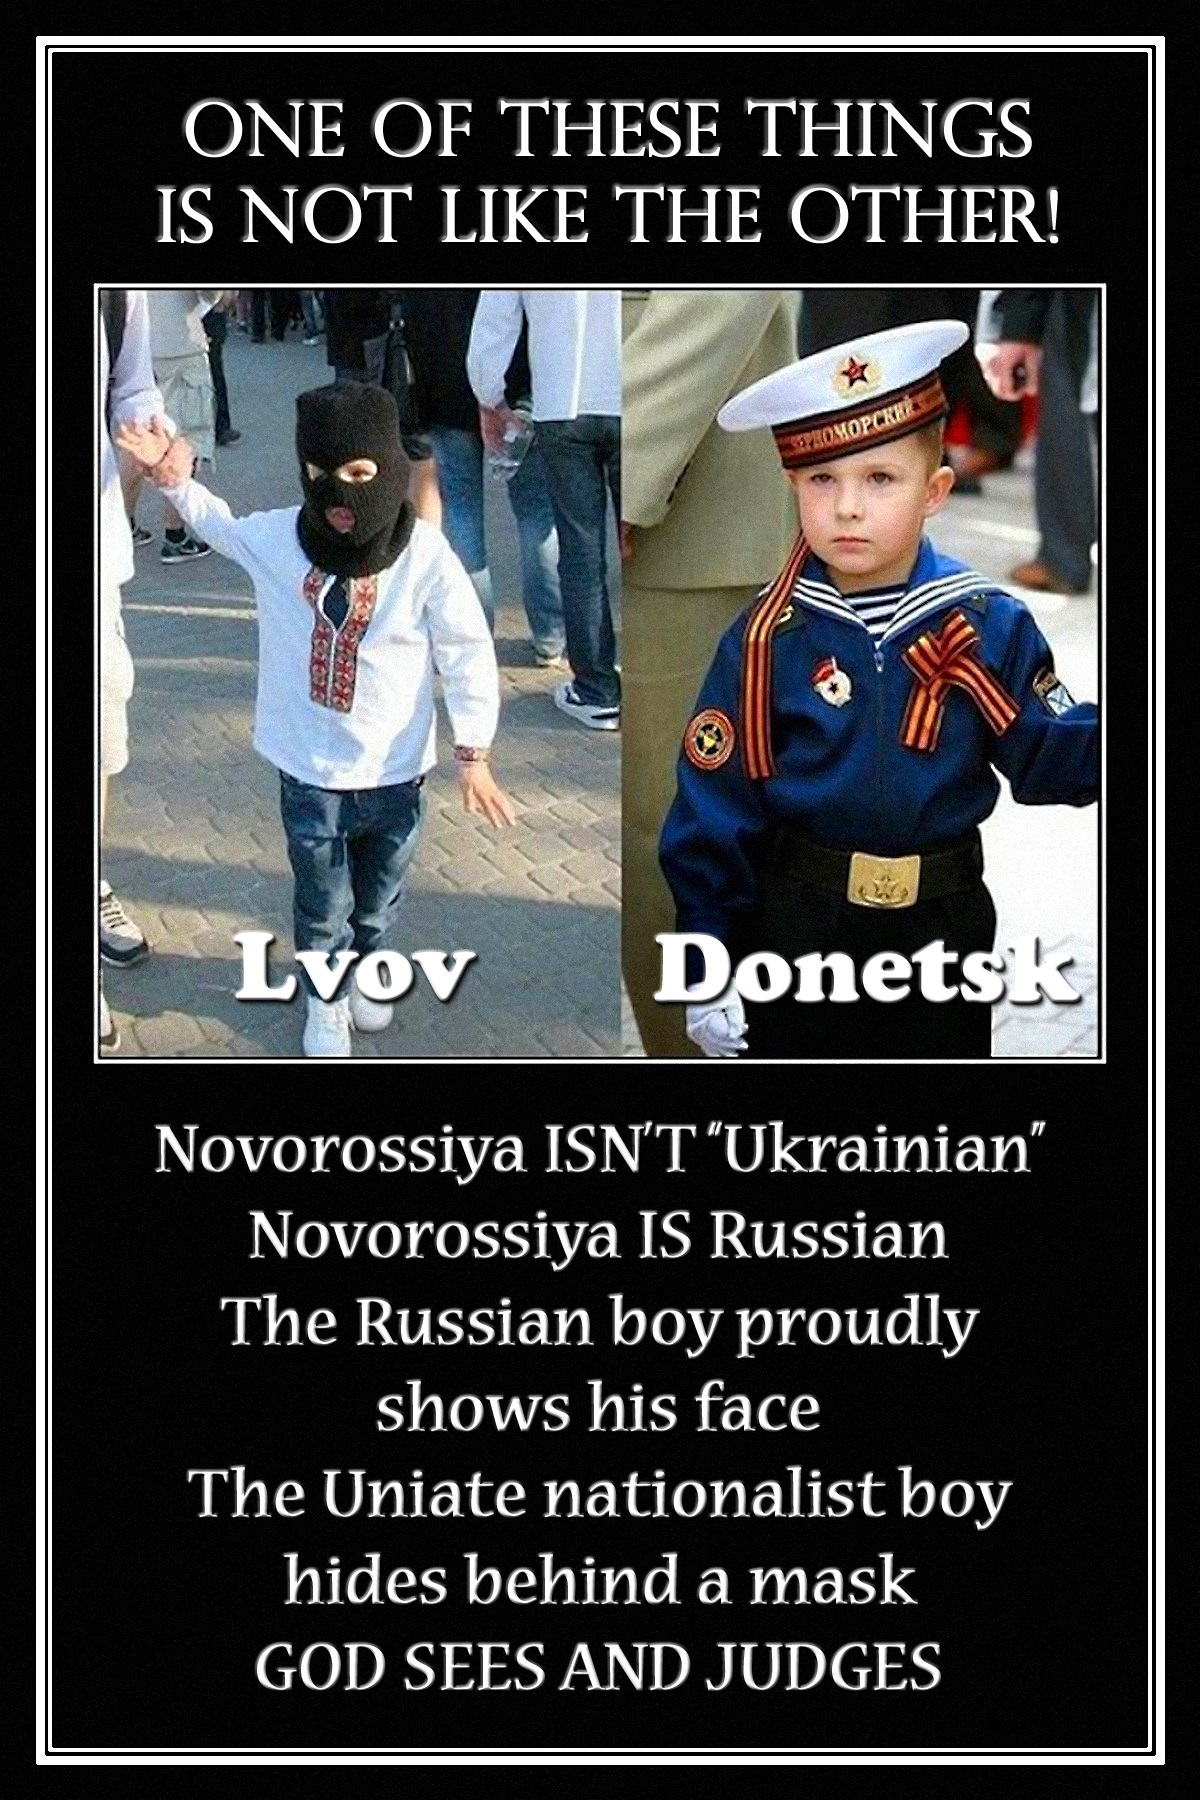 00 novorossiya is NOT the ukraine 060316